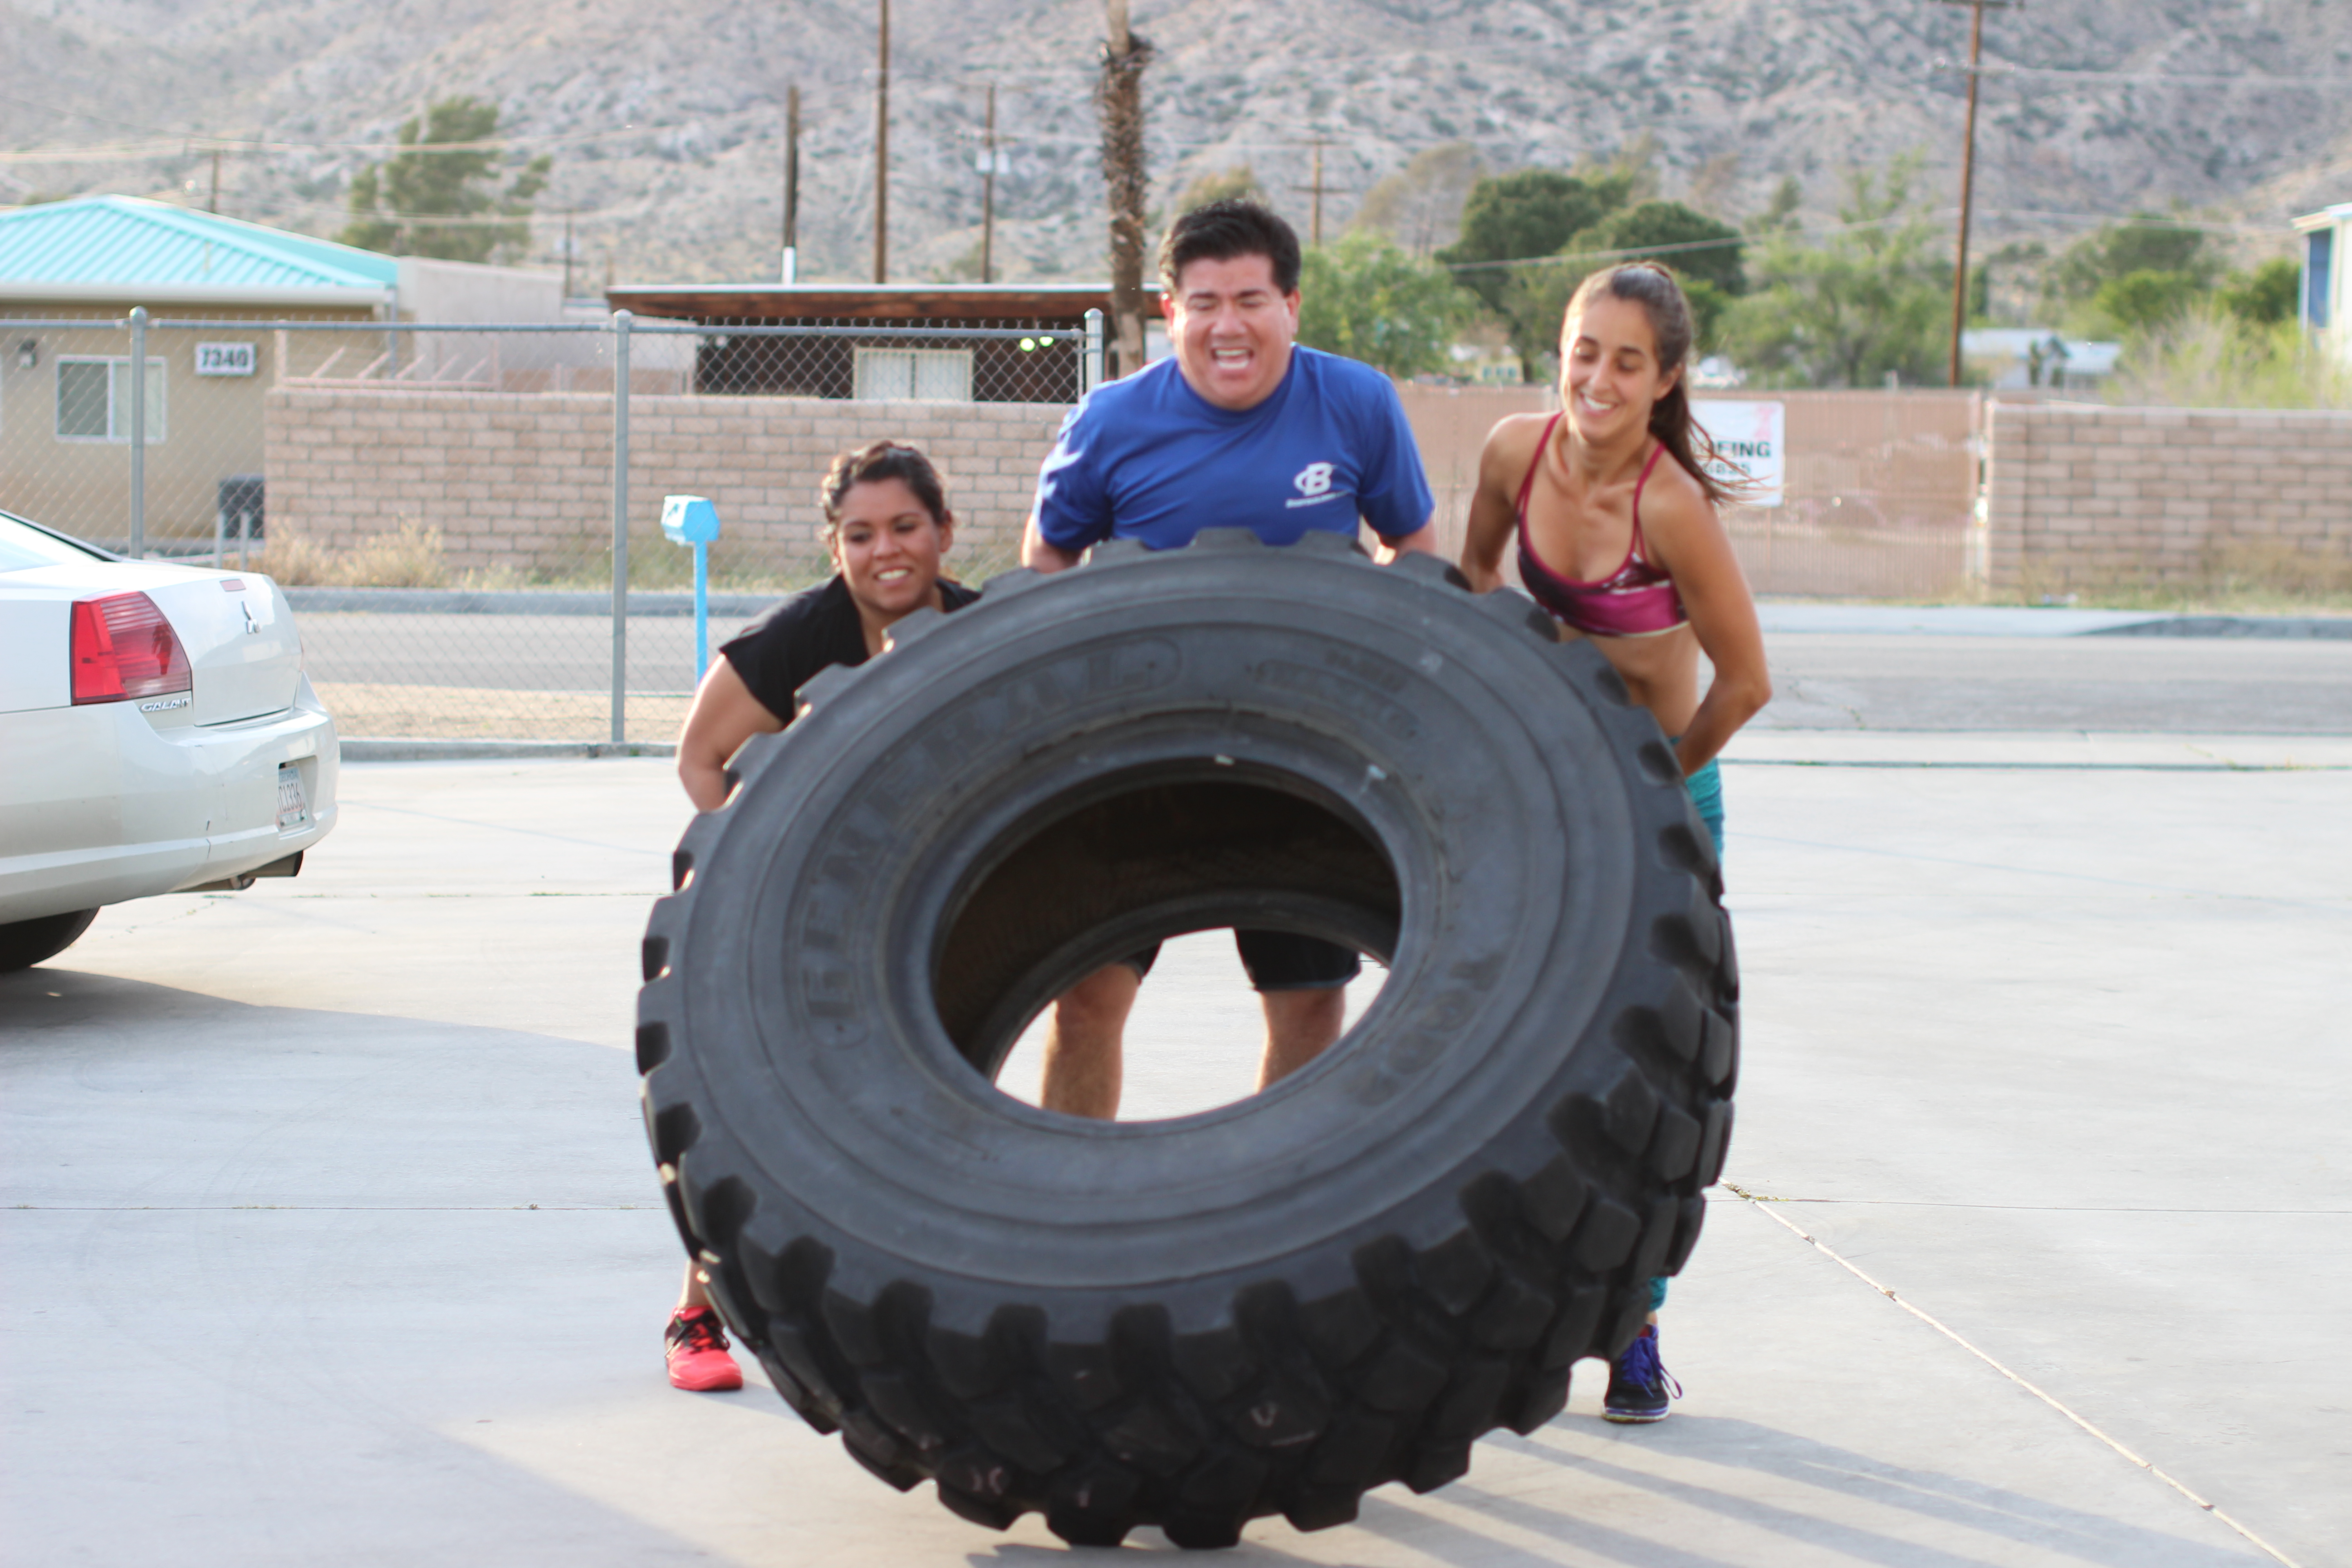 Amy, Jesse, and Claudia handling the tire flips!